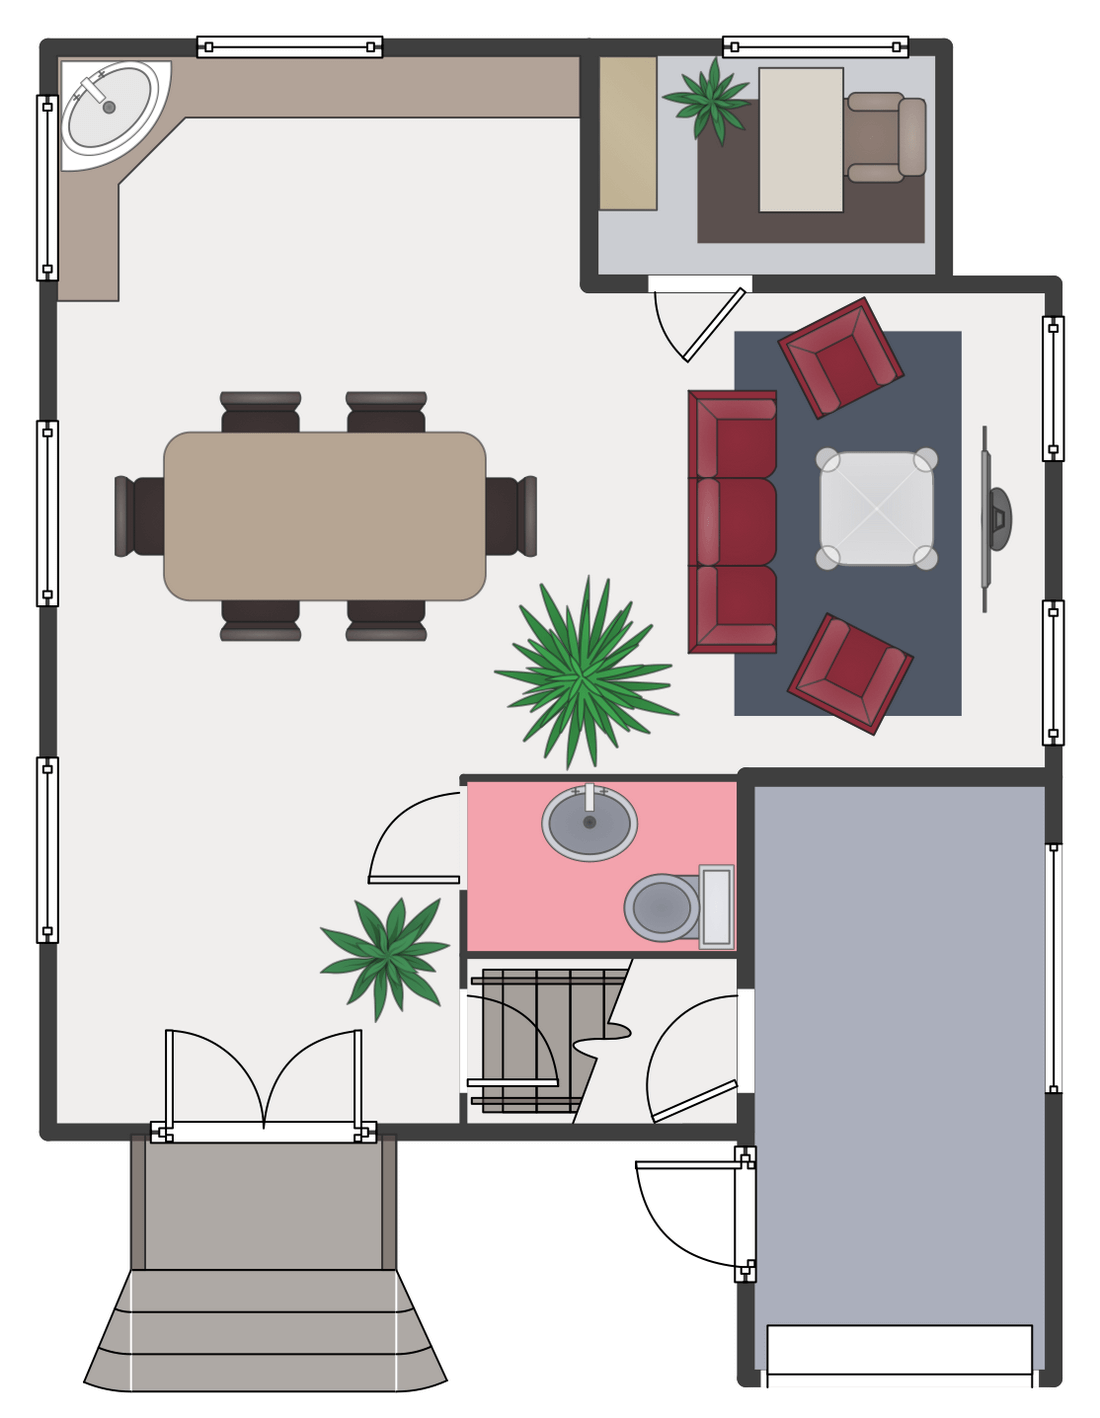 Sample 9 Ground Floor Plan